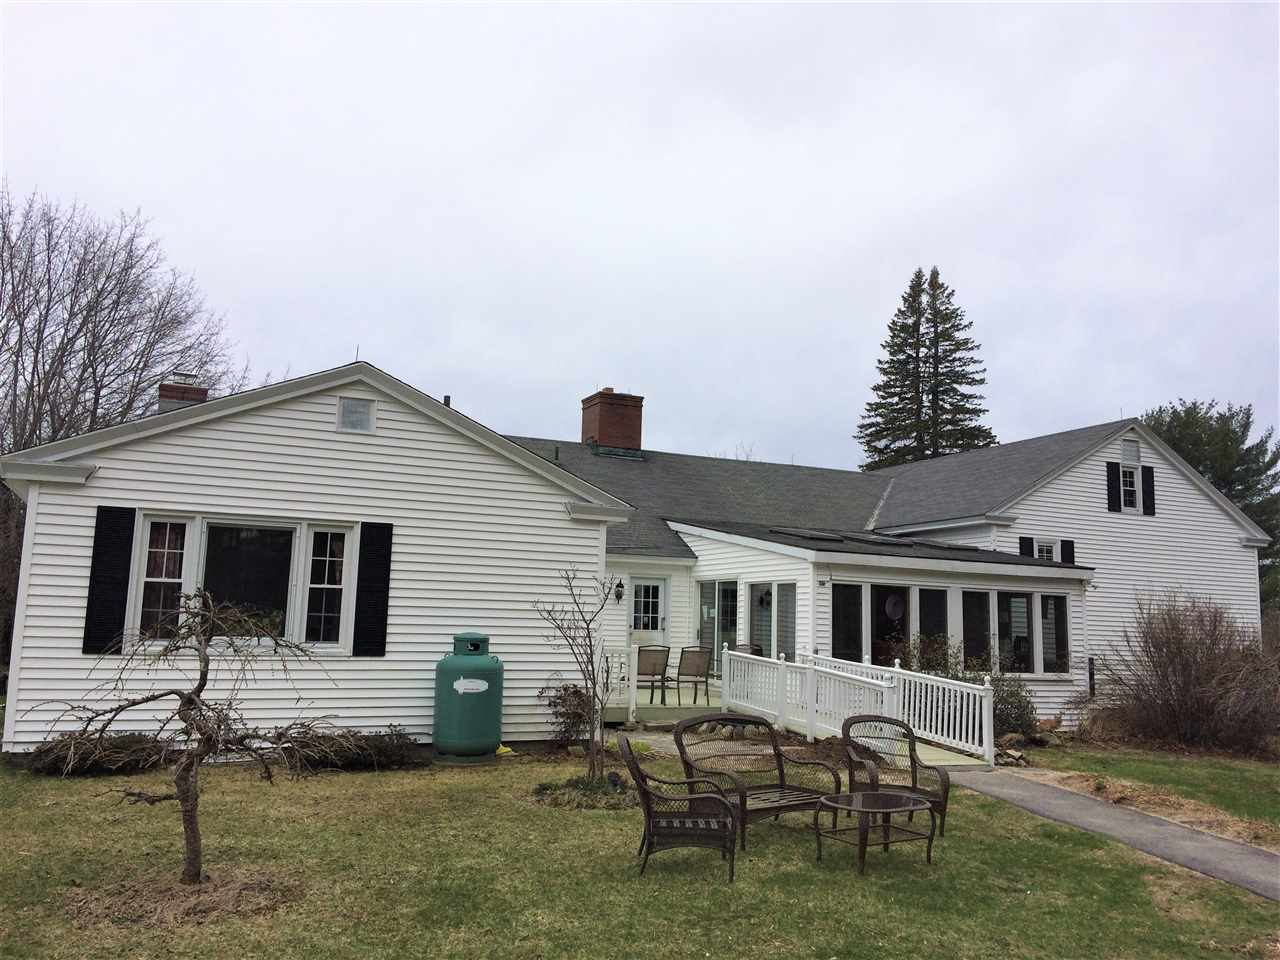 TUFTONBORO NHCommercial Listing for sale